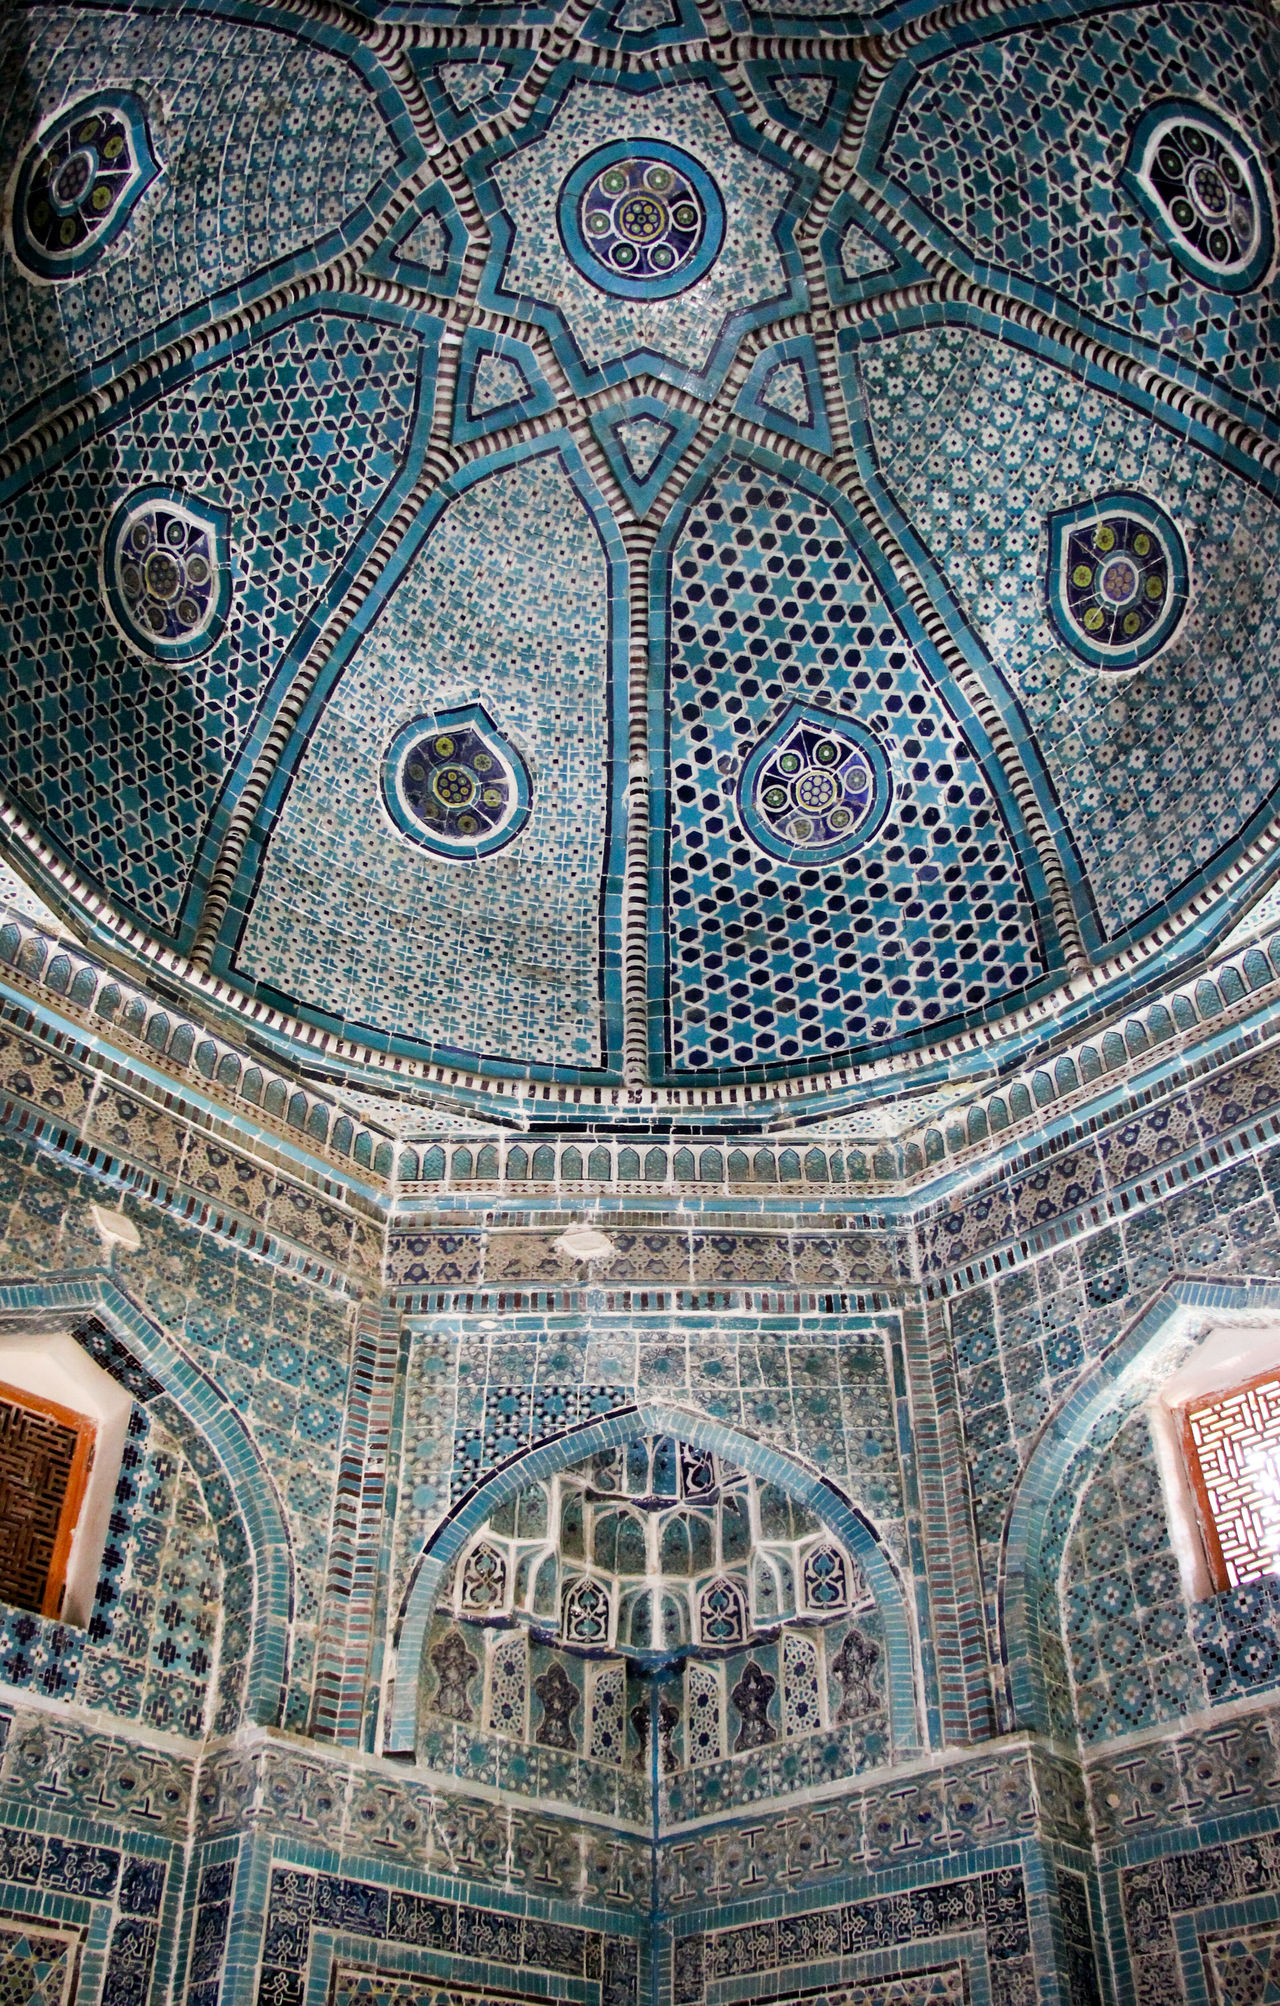 Architecture Backgrounds Built Structure Ceiling Cupola Day Dome Full Frame History Indoors  Low Angle View Mausoleum Mosaic No People Pattern Place Of Worship Religion Samarkand Samarqand Silk Road Spirituality Tile Travel Destinations Uzbekistan